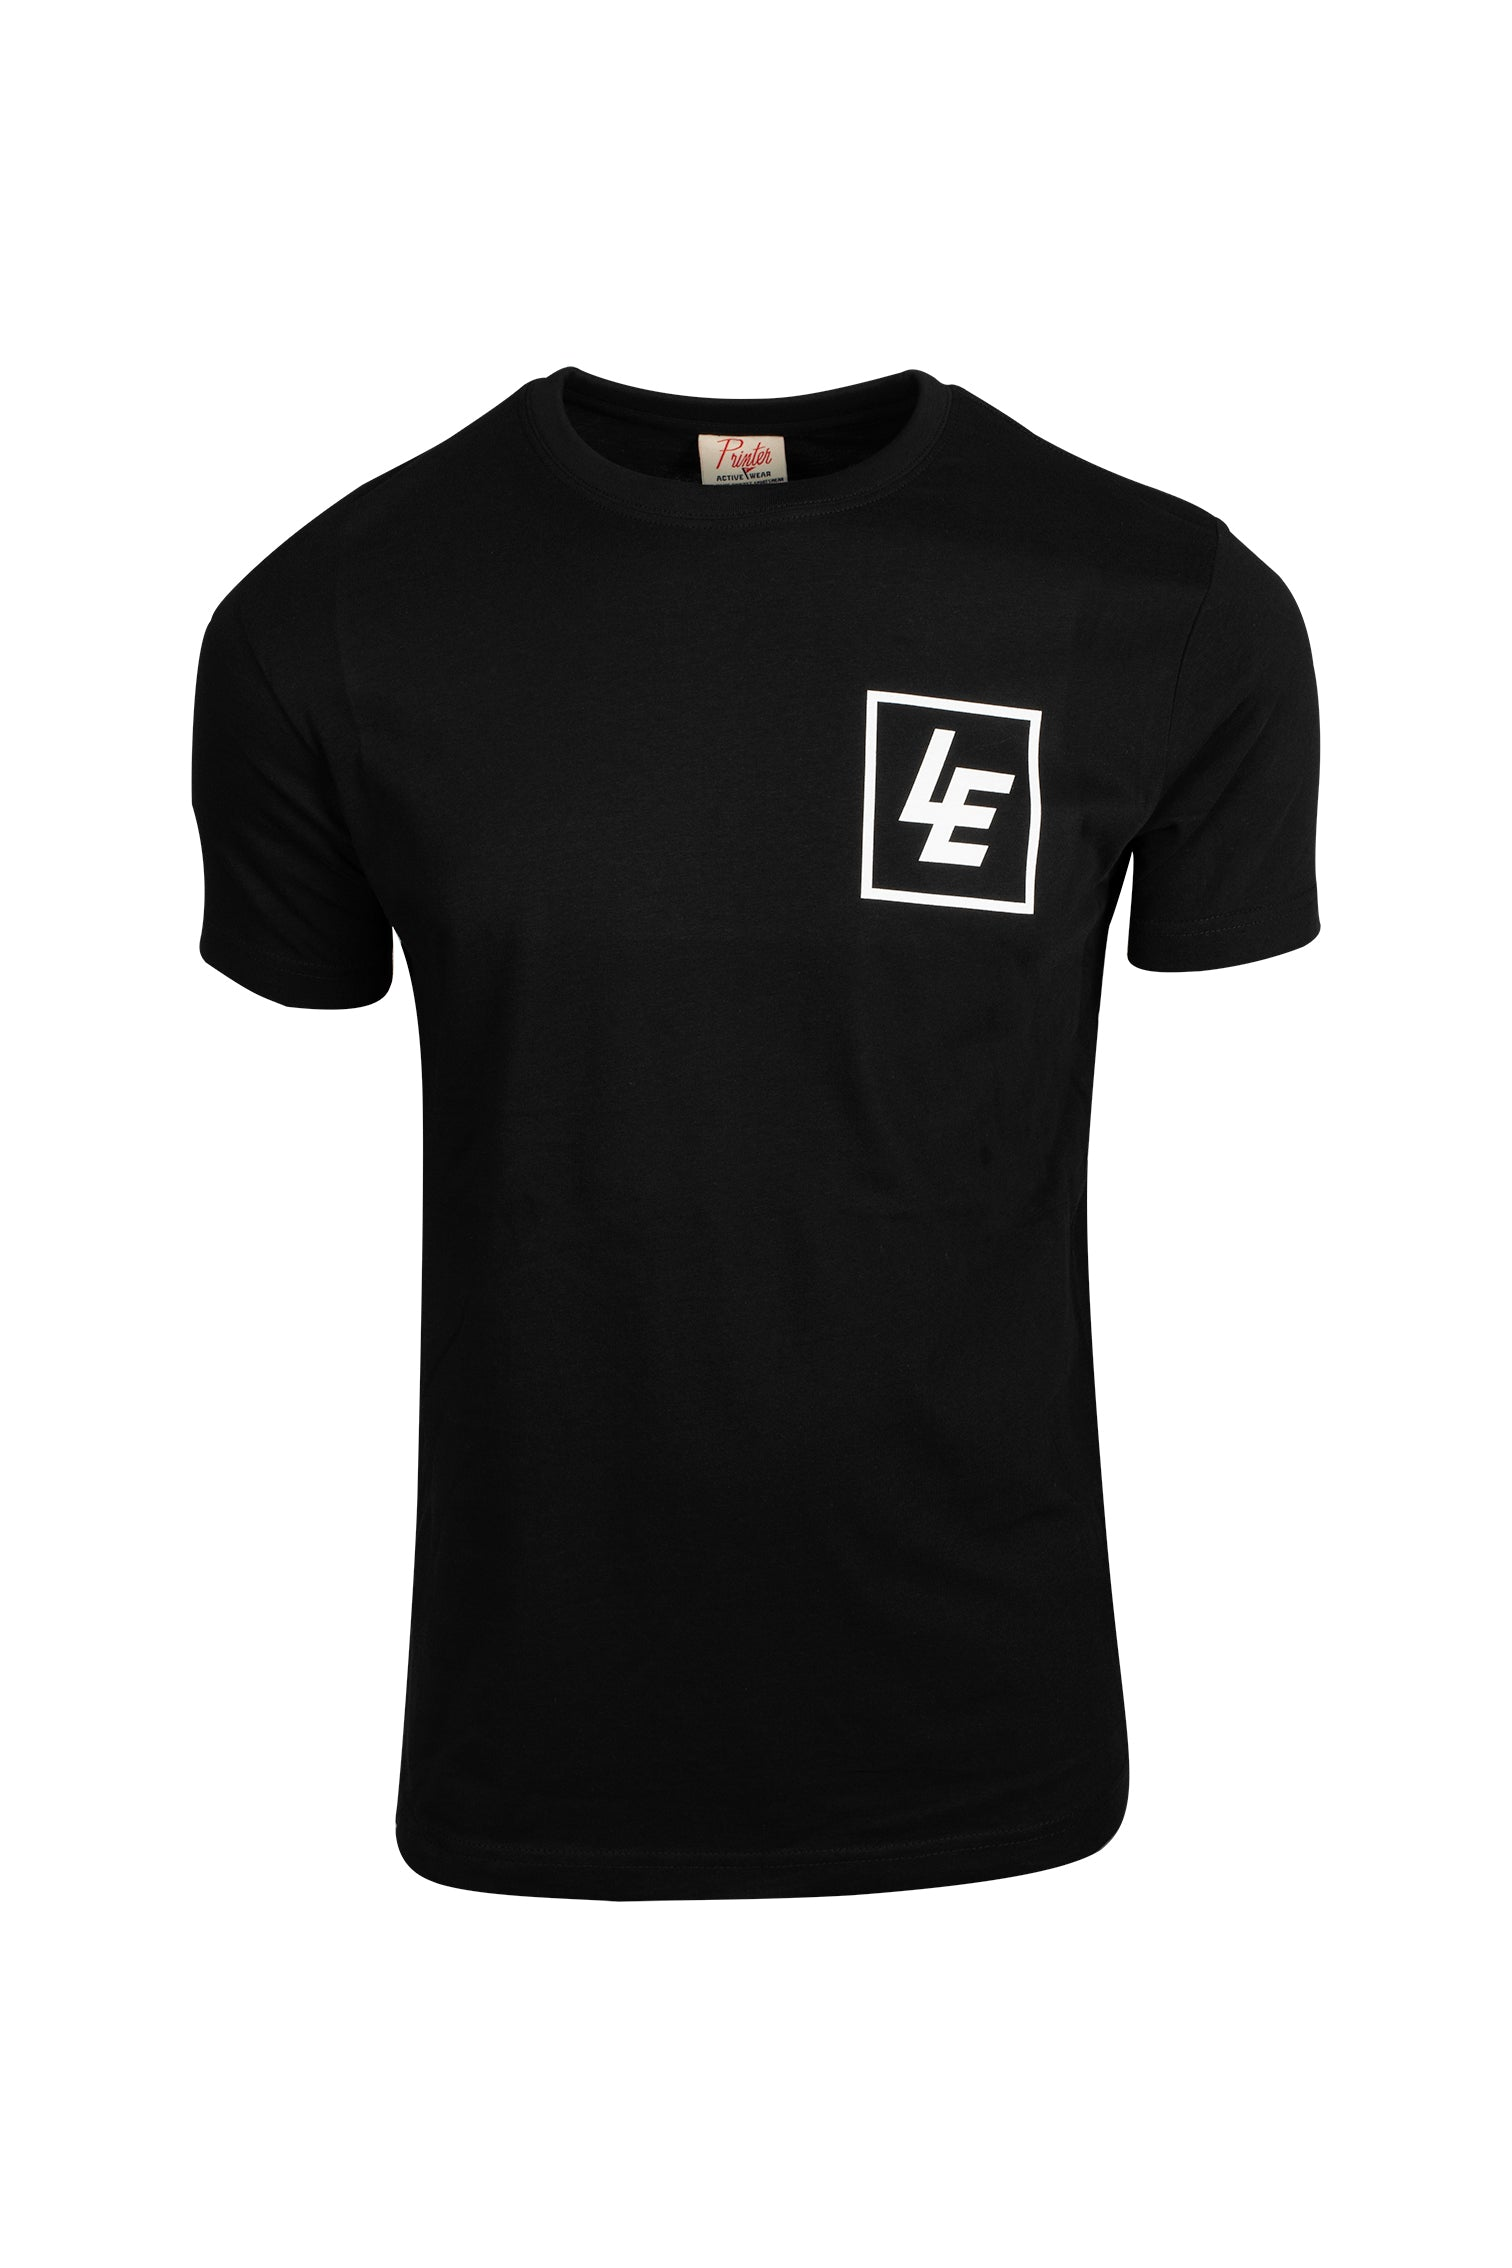 Liam Everts - LE Shirt - Black for Adults